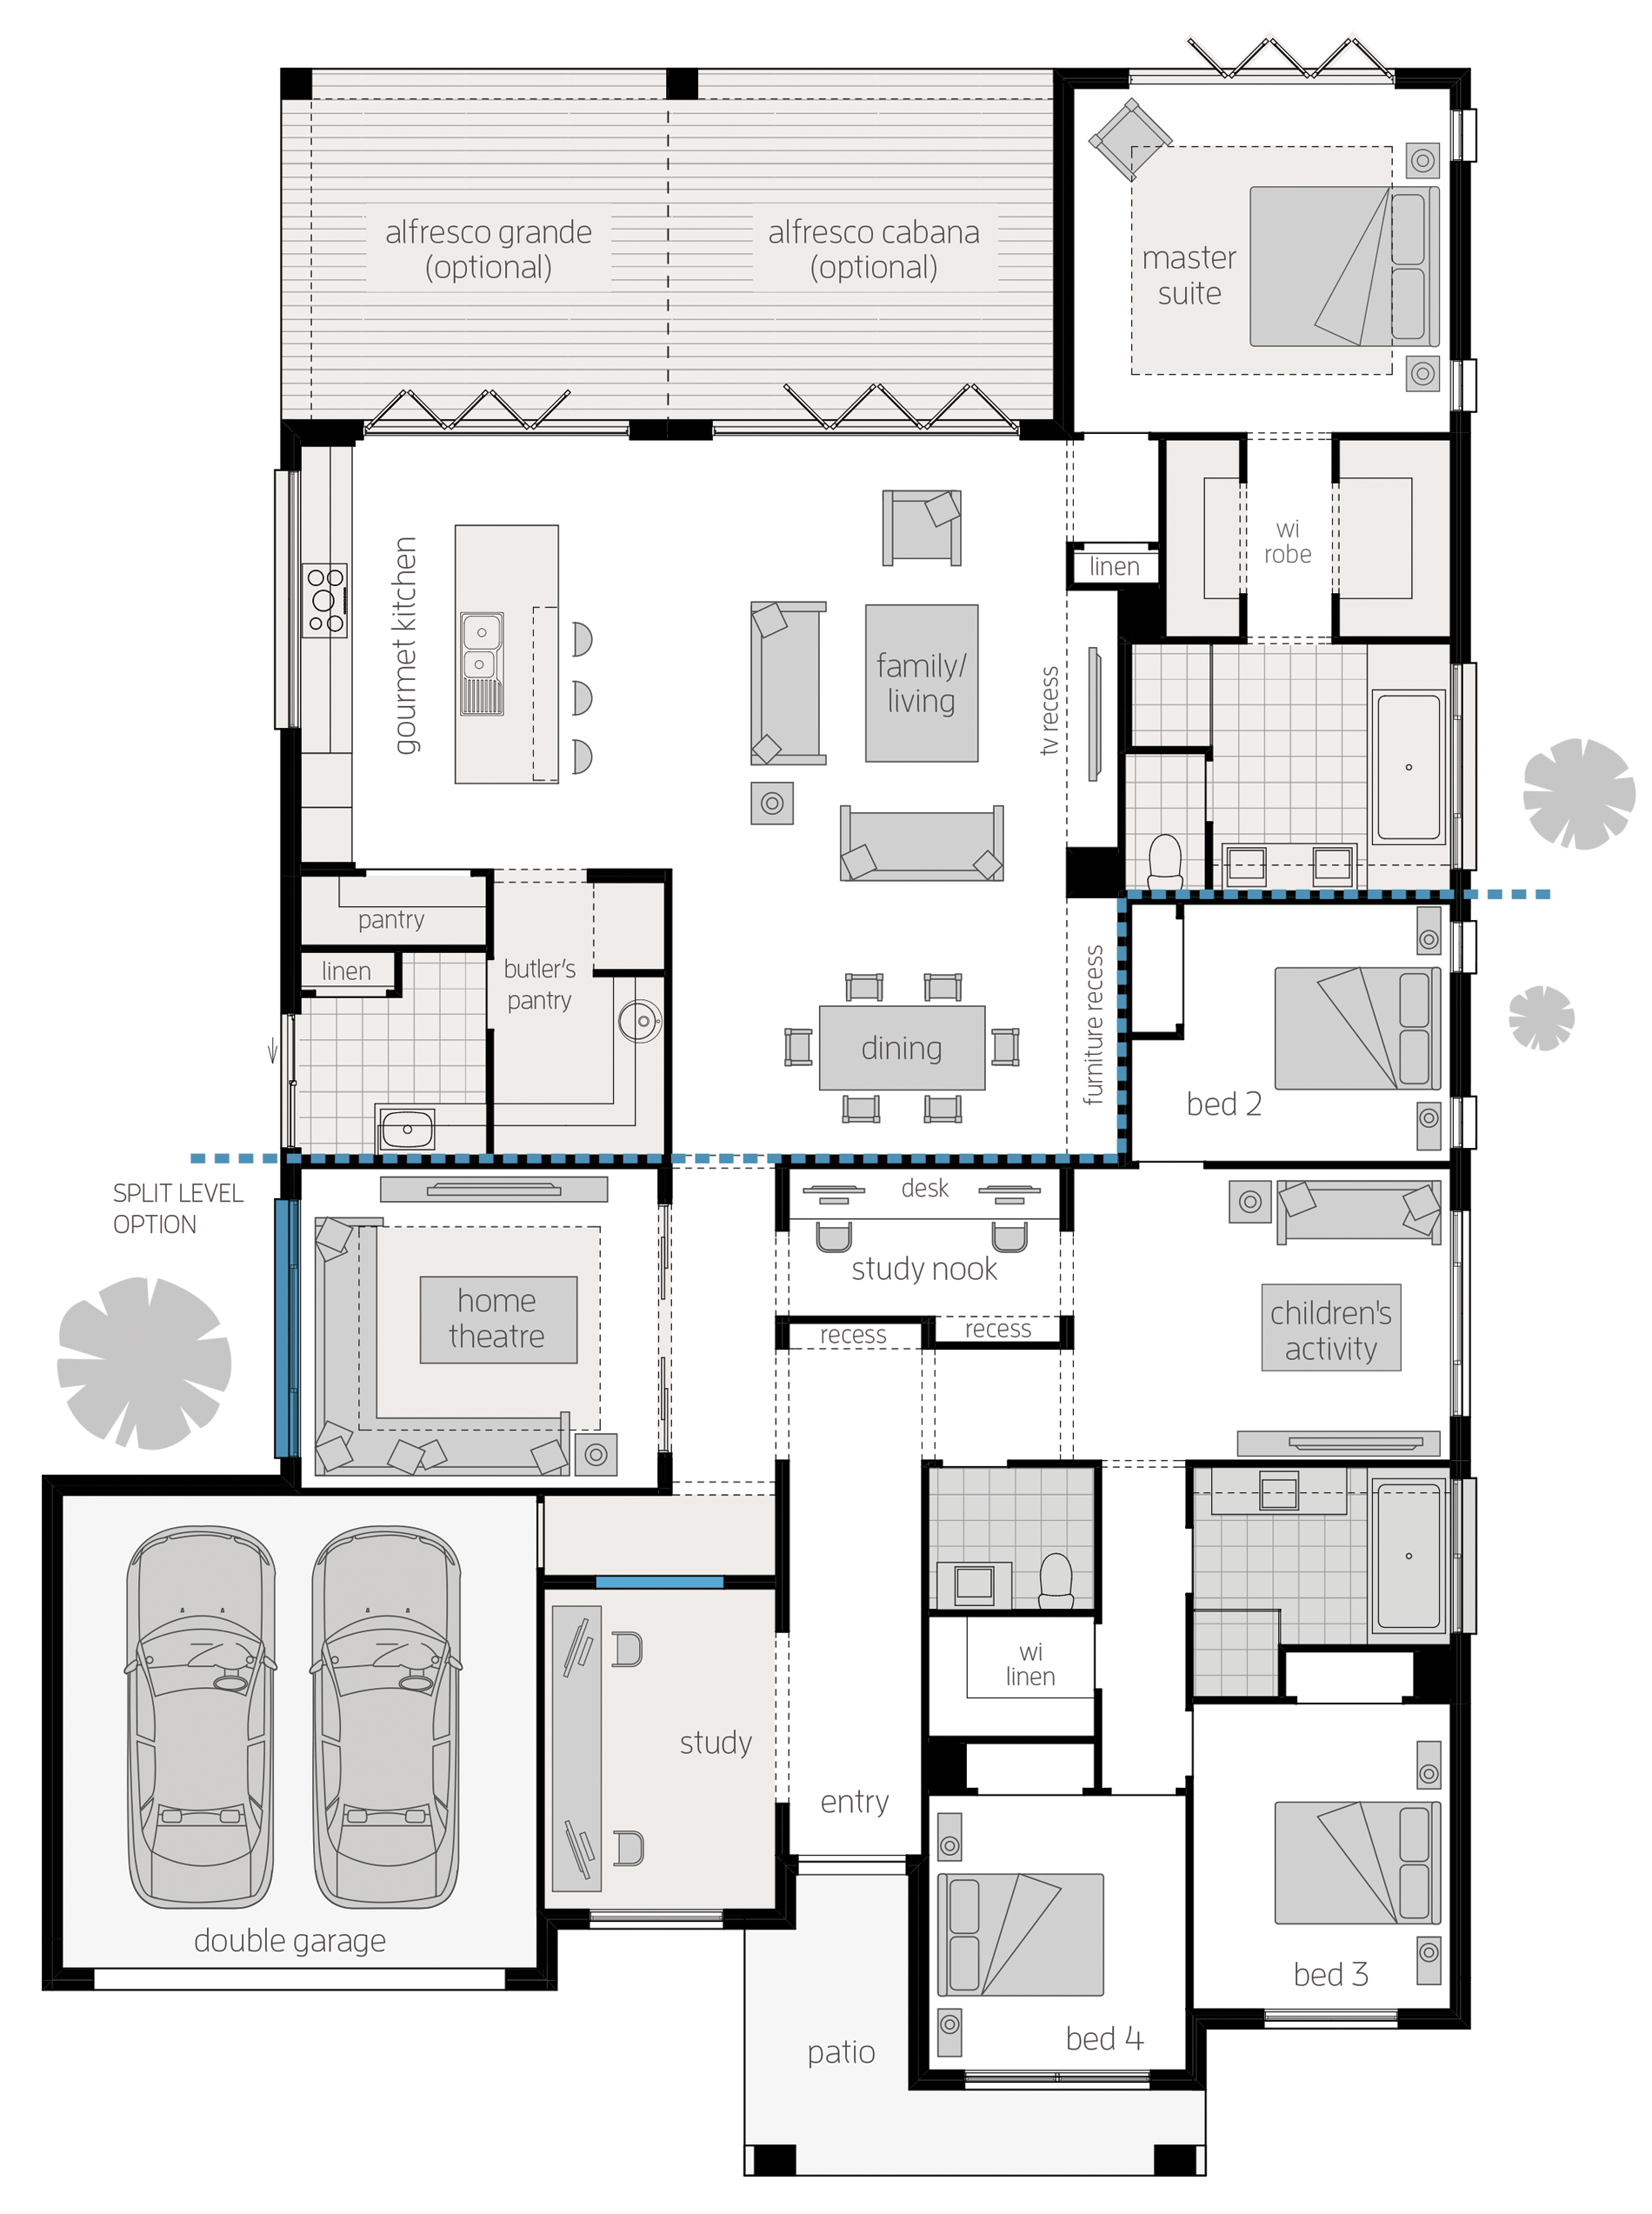 Miami Executive 16 Upgrades Floor Plan Dream House Plans My House Plans New House Plans